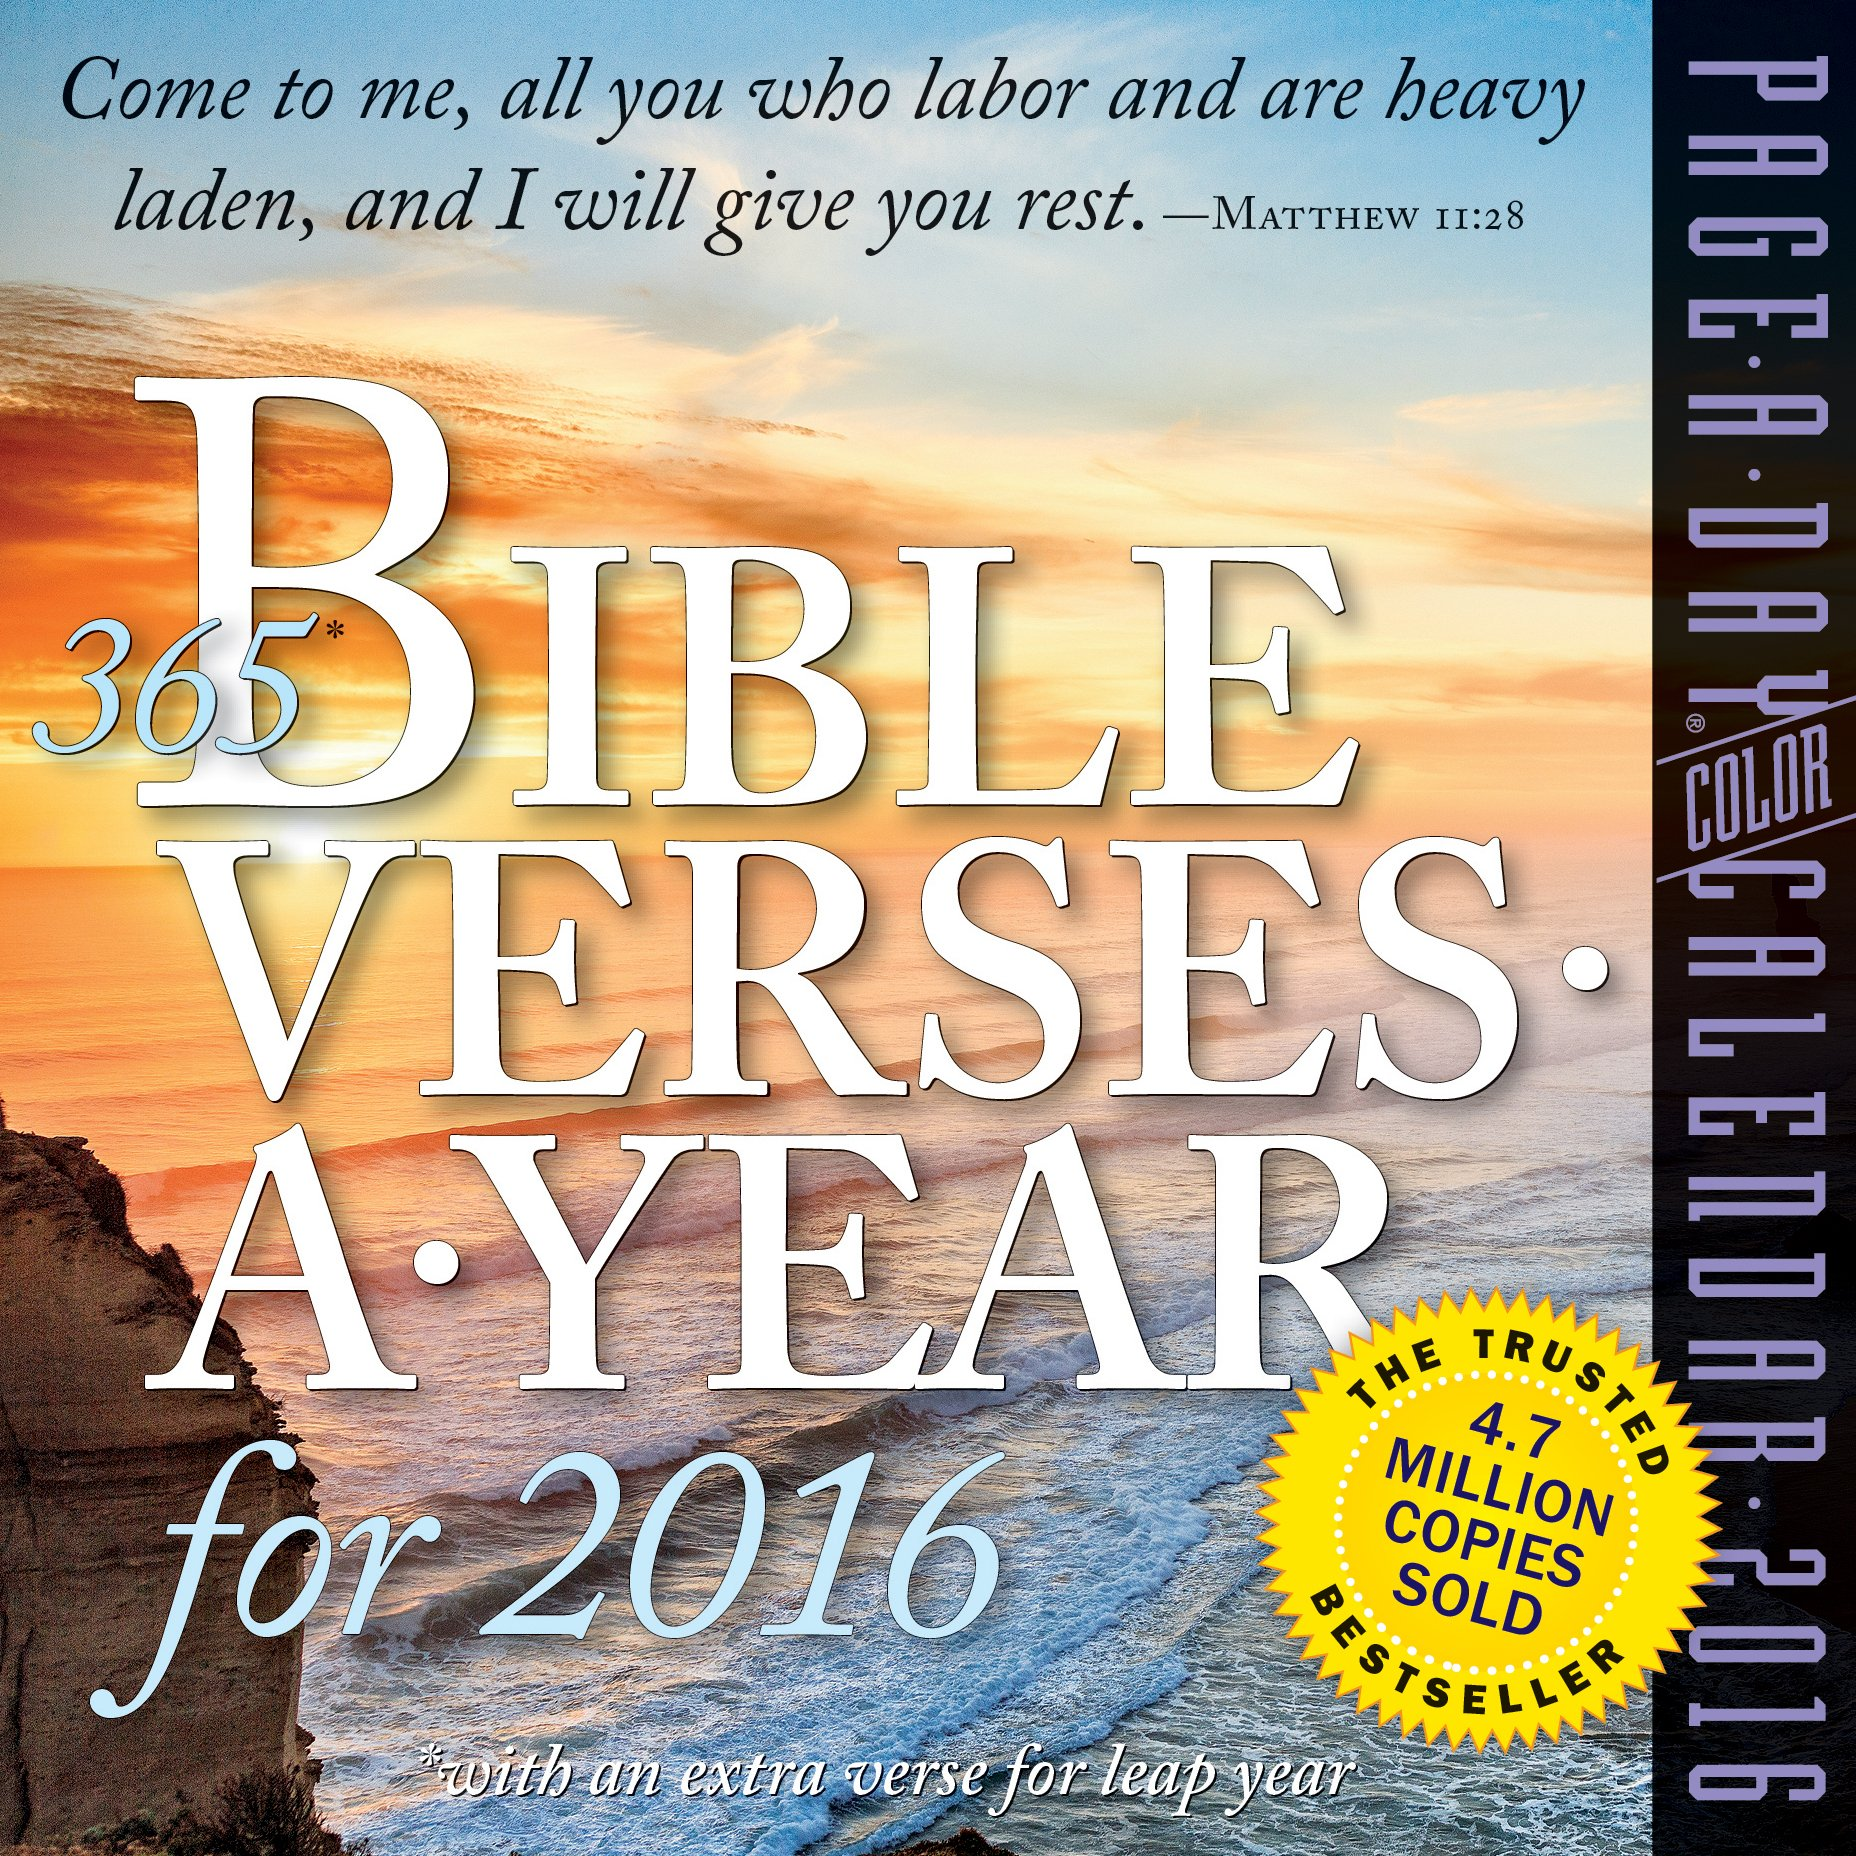 365 Bible Verses-A-Year Color Page-A-Day Calendar 2016: Workman Publishing:  9780761183730: Amazon.com: Books